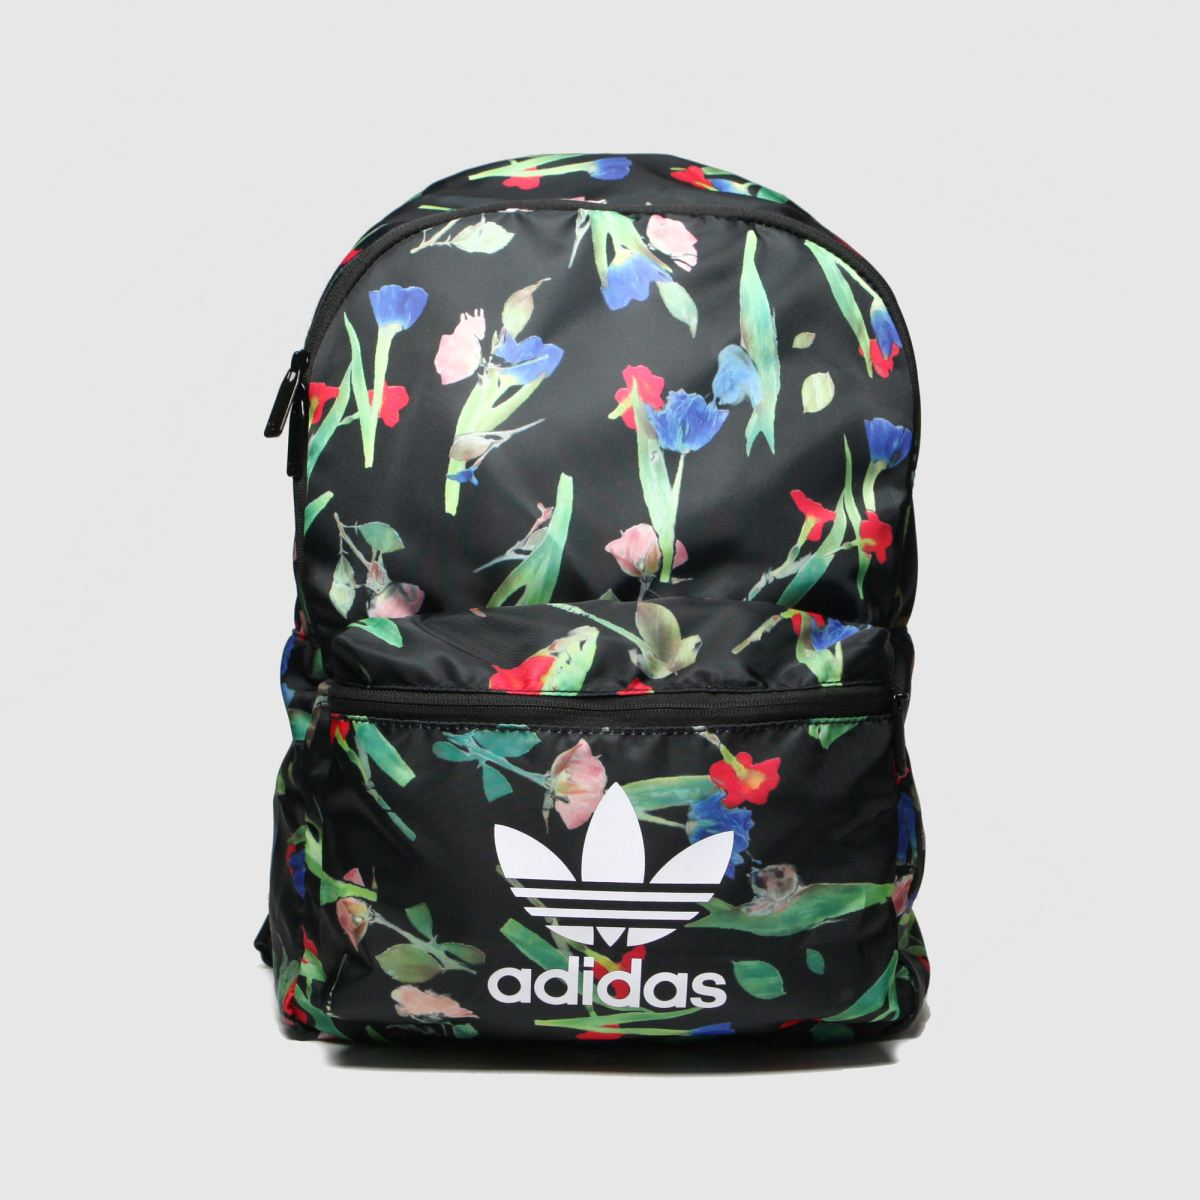 Image of Adidas Black & Green Classic Backpack